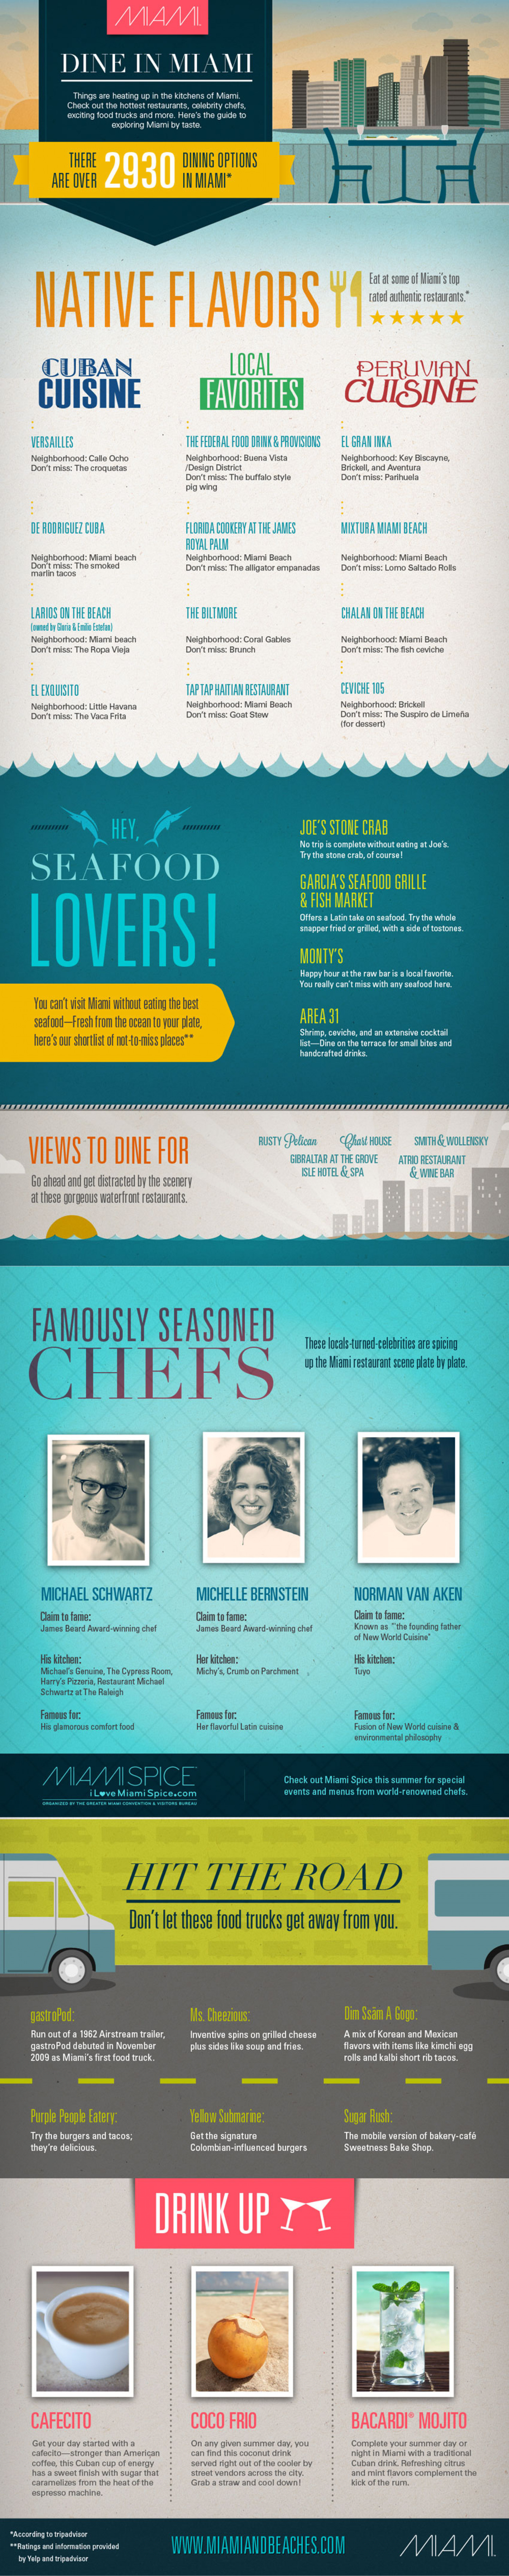 Miami Dining Guide Infographic